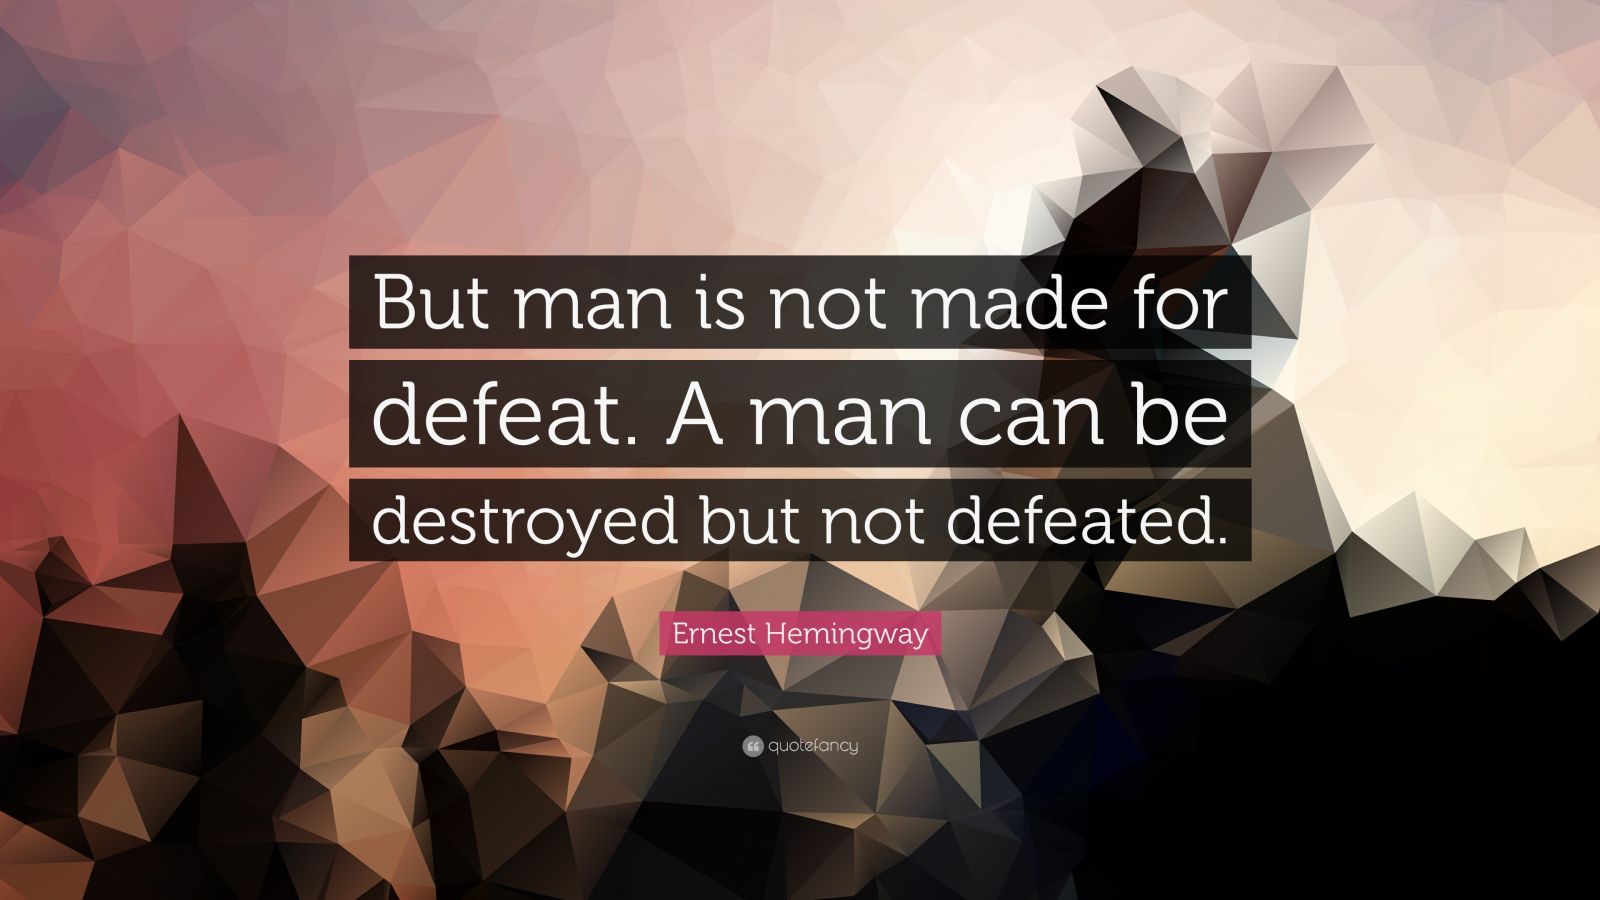 destroyed but not defeated hemingwayt Destroyed but not defeated, hemingwayt a man can be destroyed but not defeated being defeated is often a temporary condition giving up is what makes it permanent.